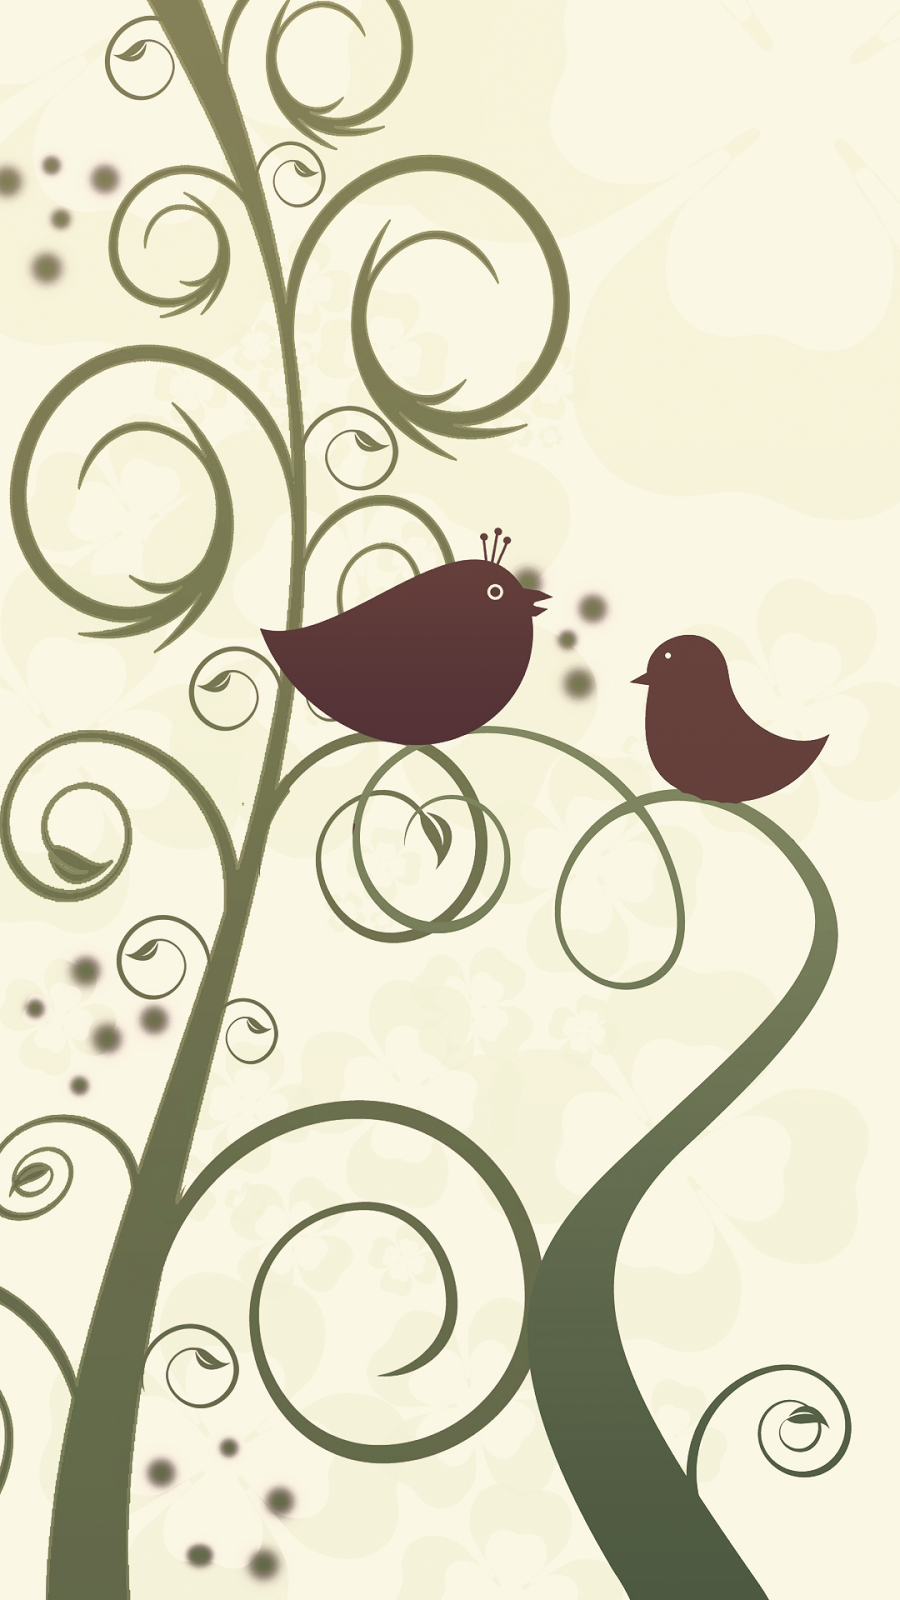 Birds HD Wallpaper For Mobile Wallpapers For Mobile Phones